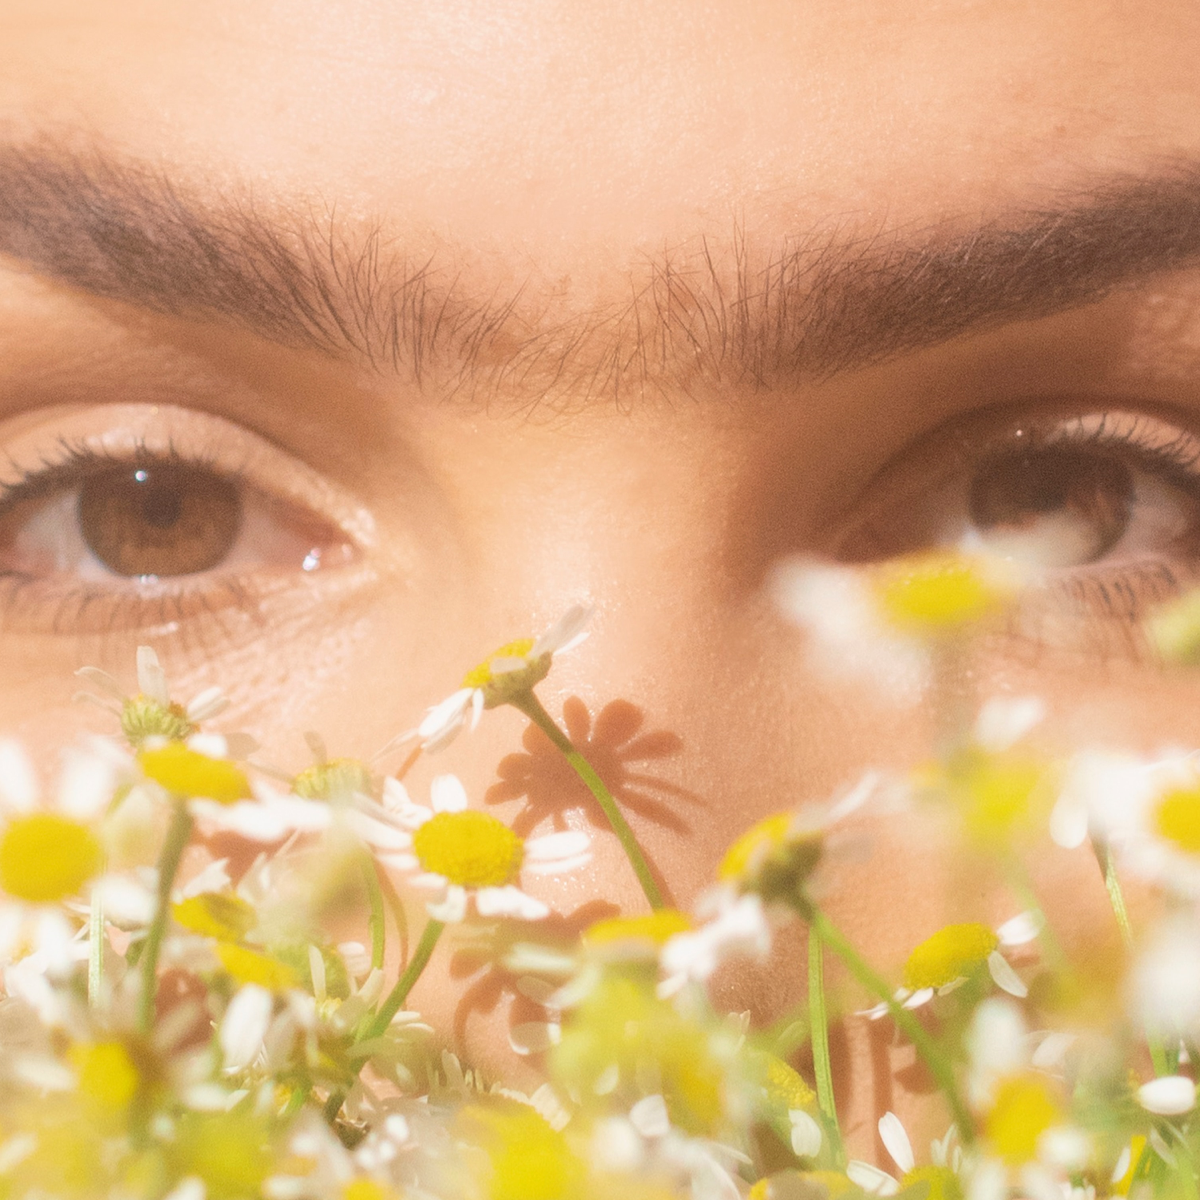 woman's face with unibrow positioned behind some flowers